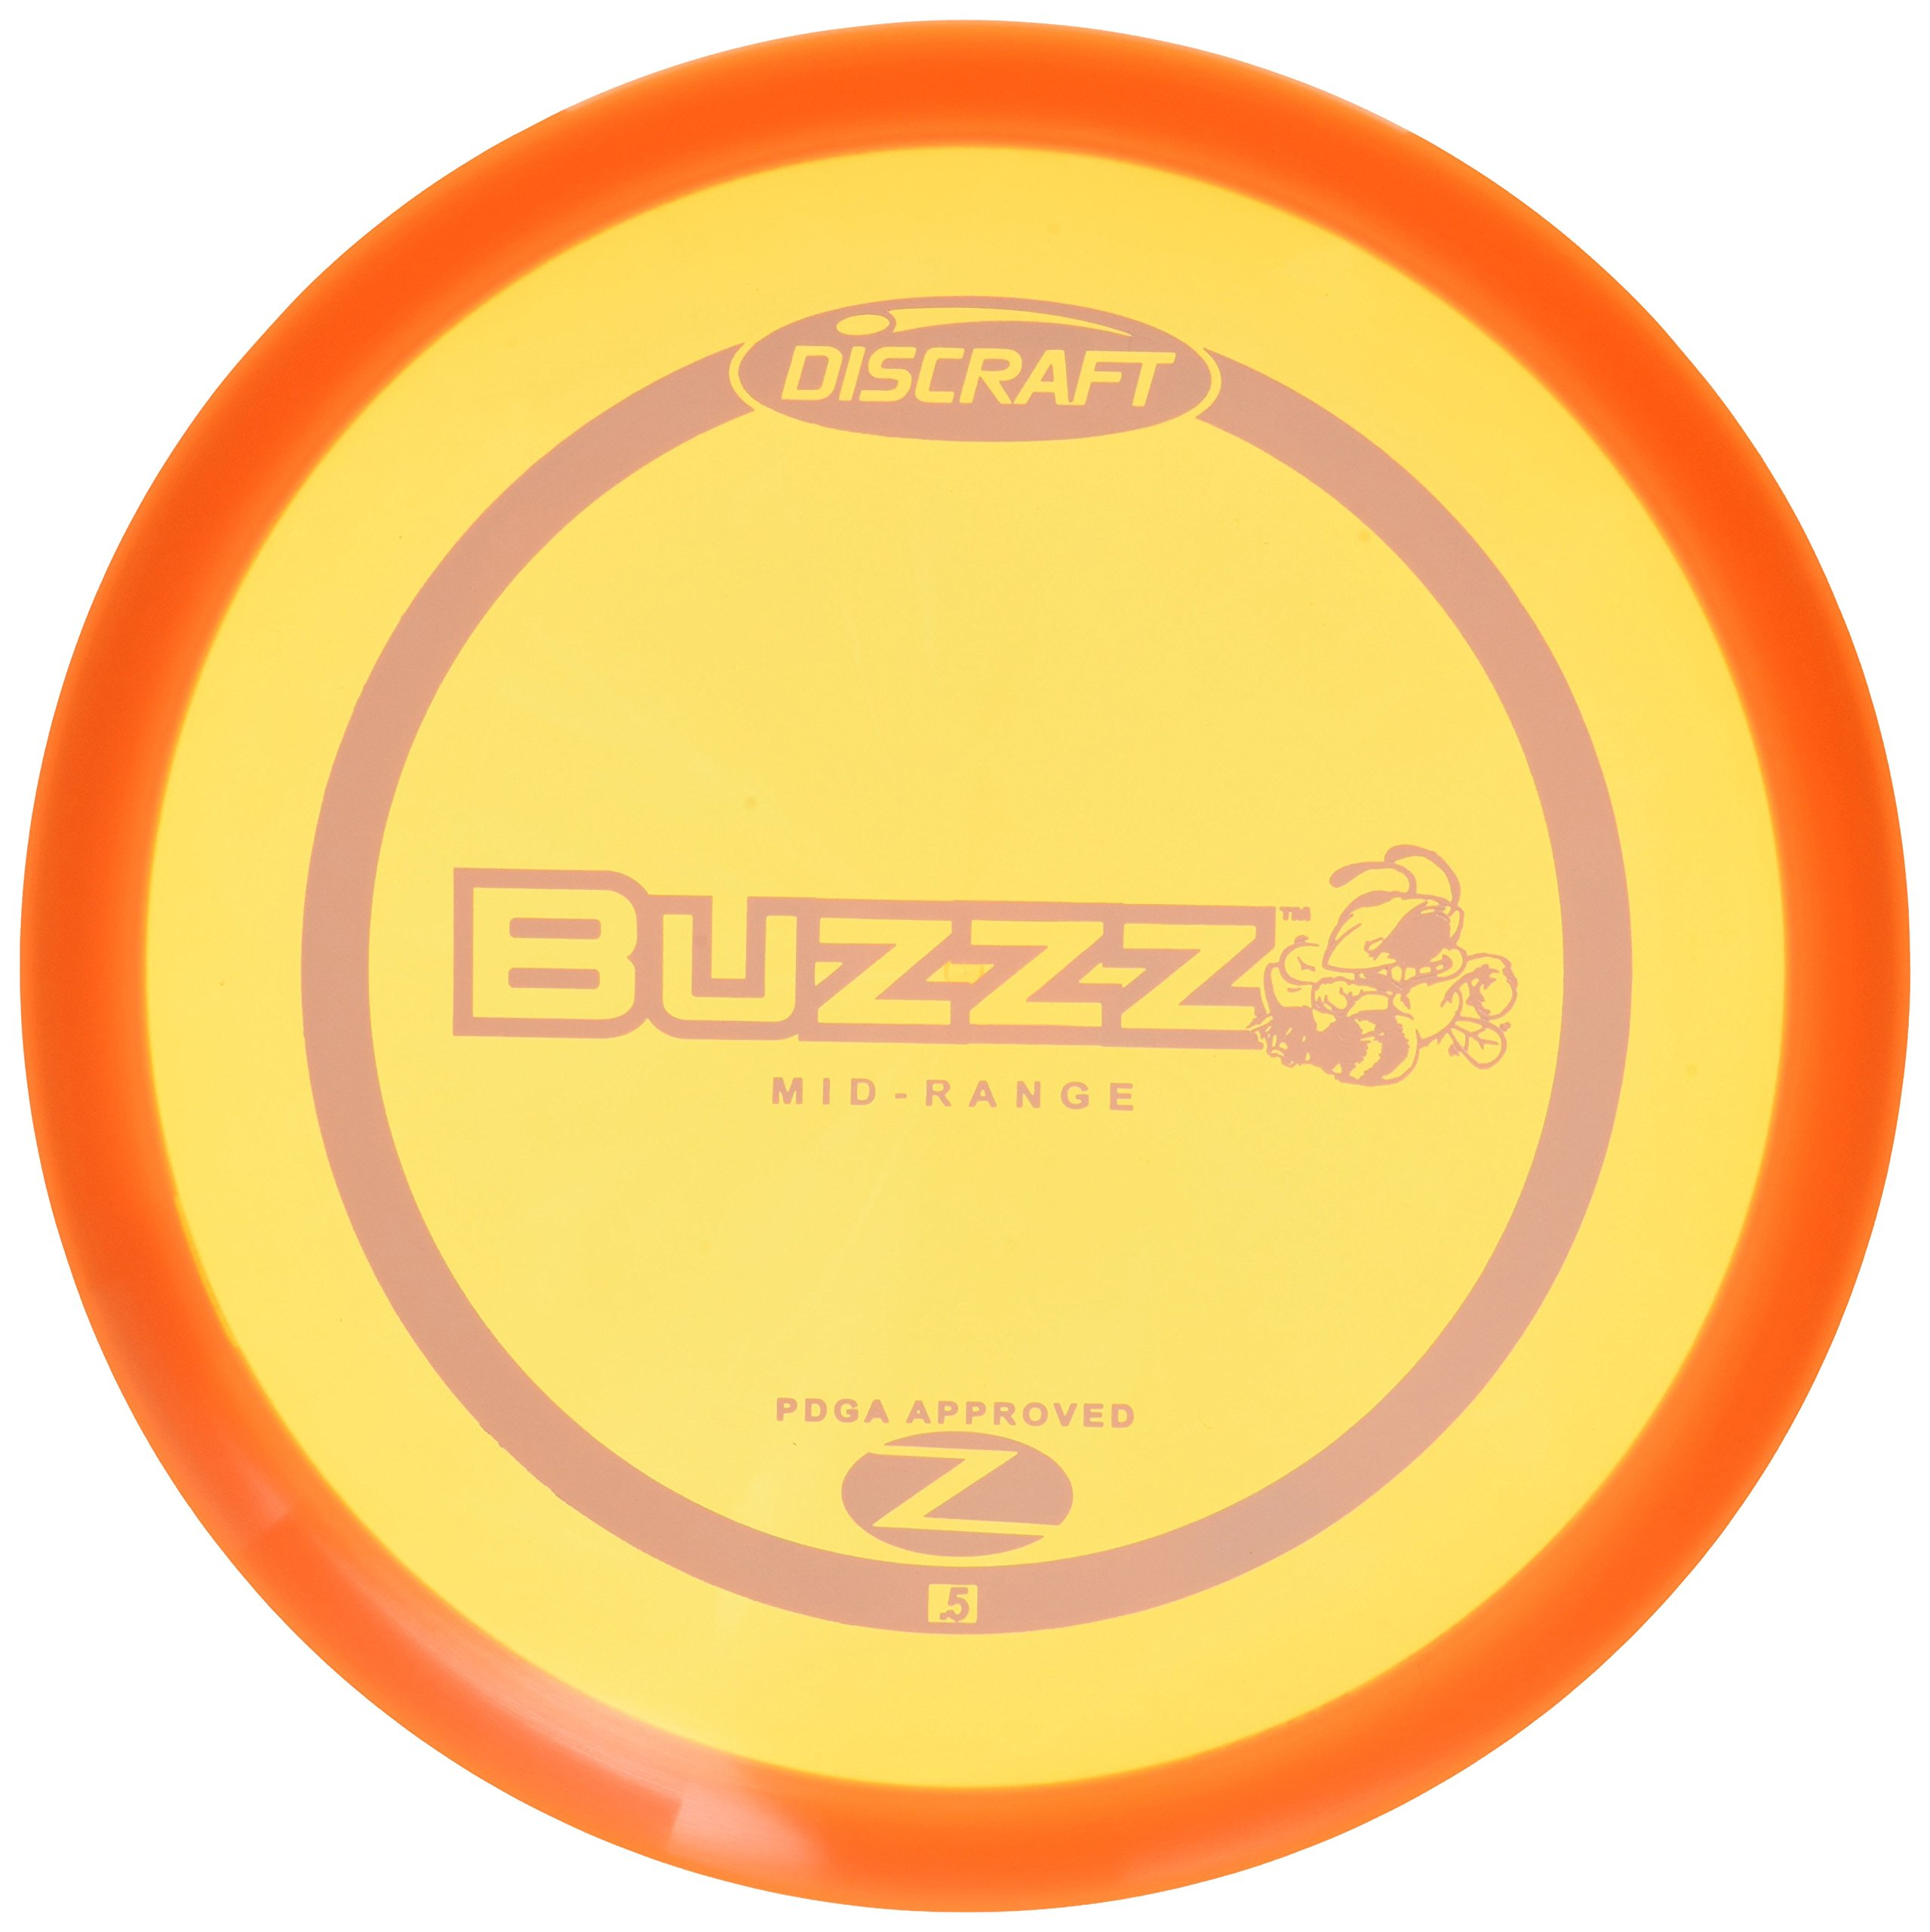 Discraft Buzzz Elite Z Golf Disc, 170-172 Grams by Discraft